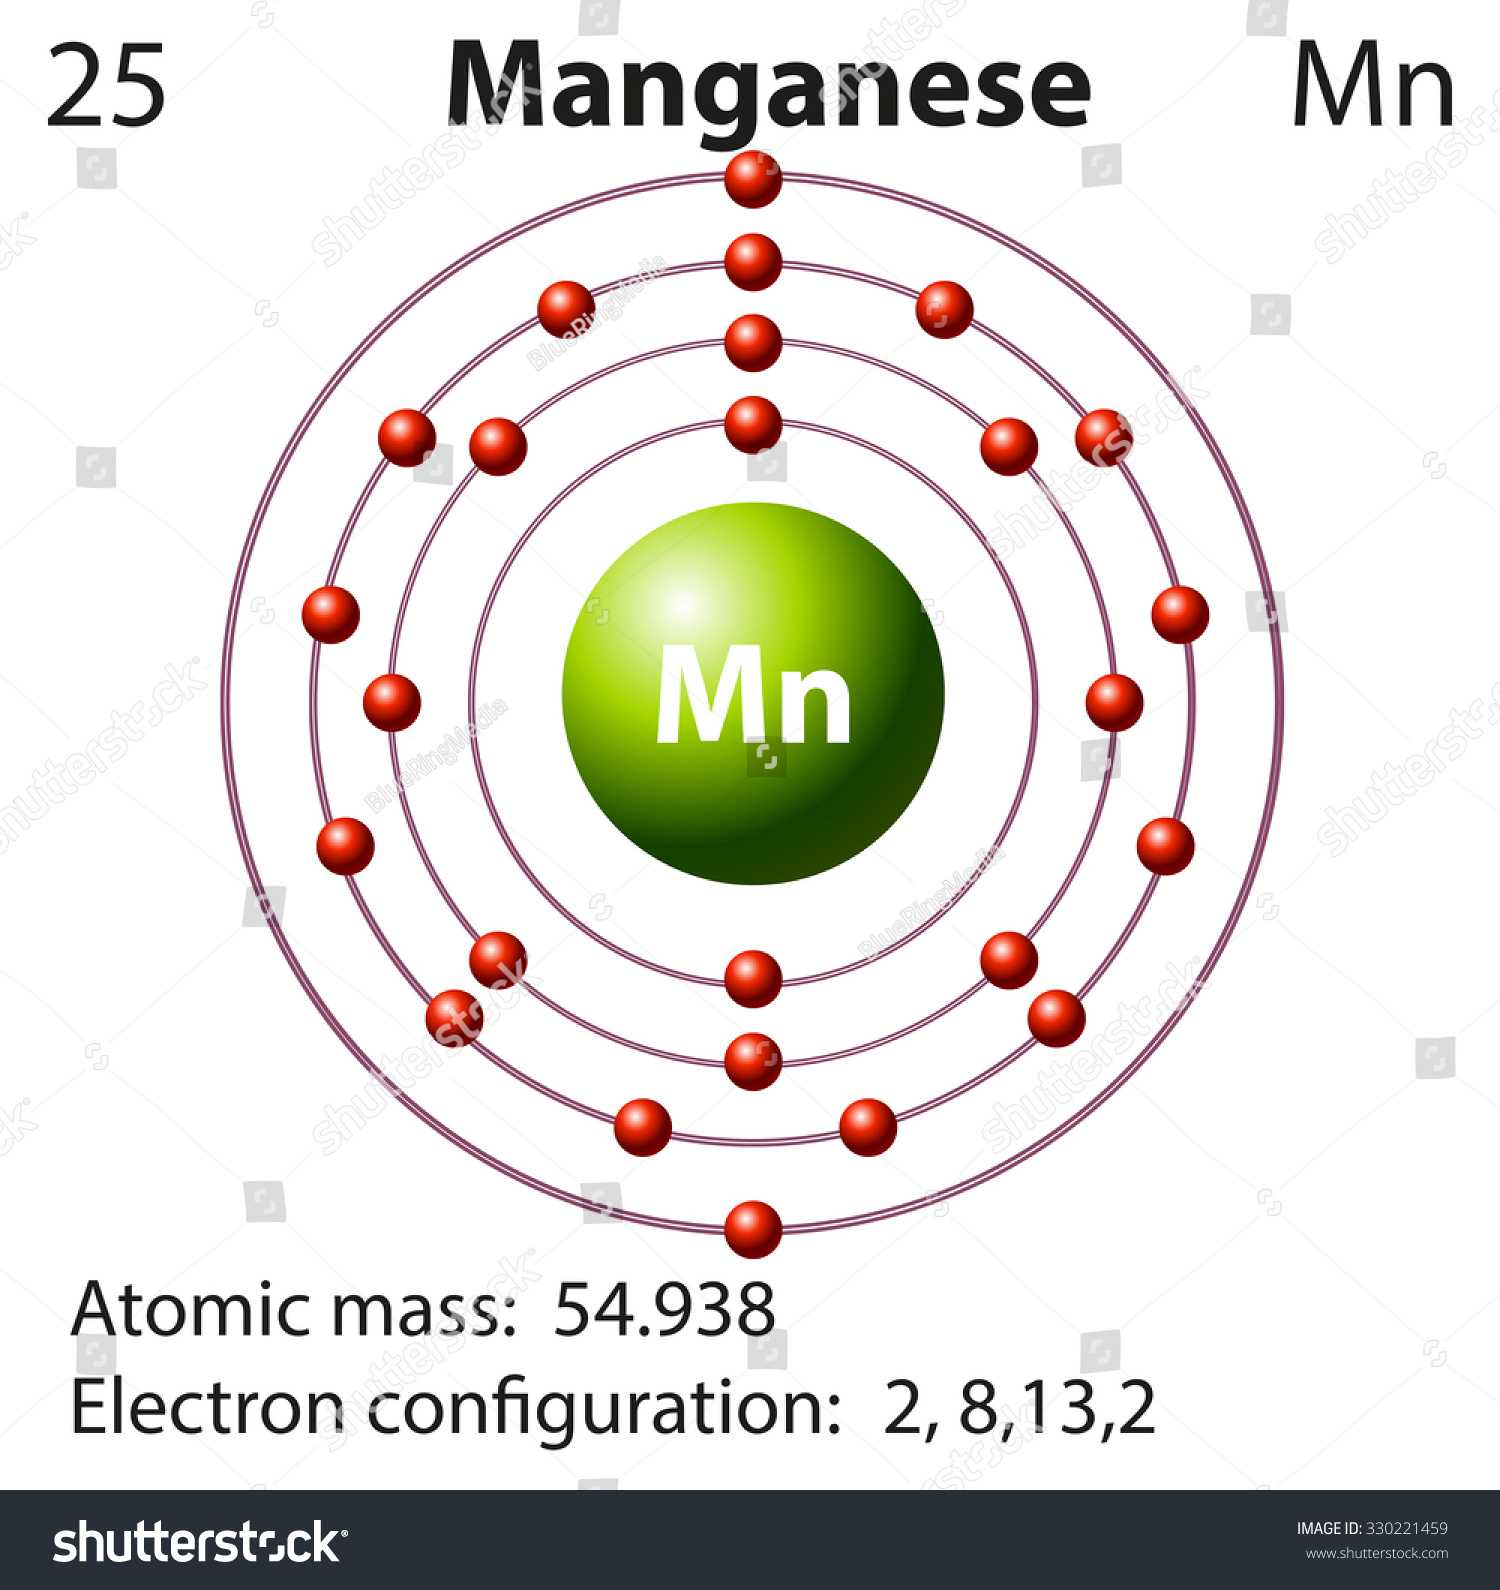 bohr diagram of iron fisher plow repair manual manganese model pictures to pin on pinterest pinsdaddy